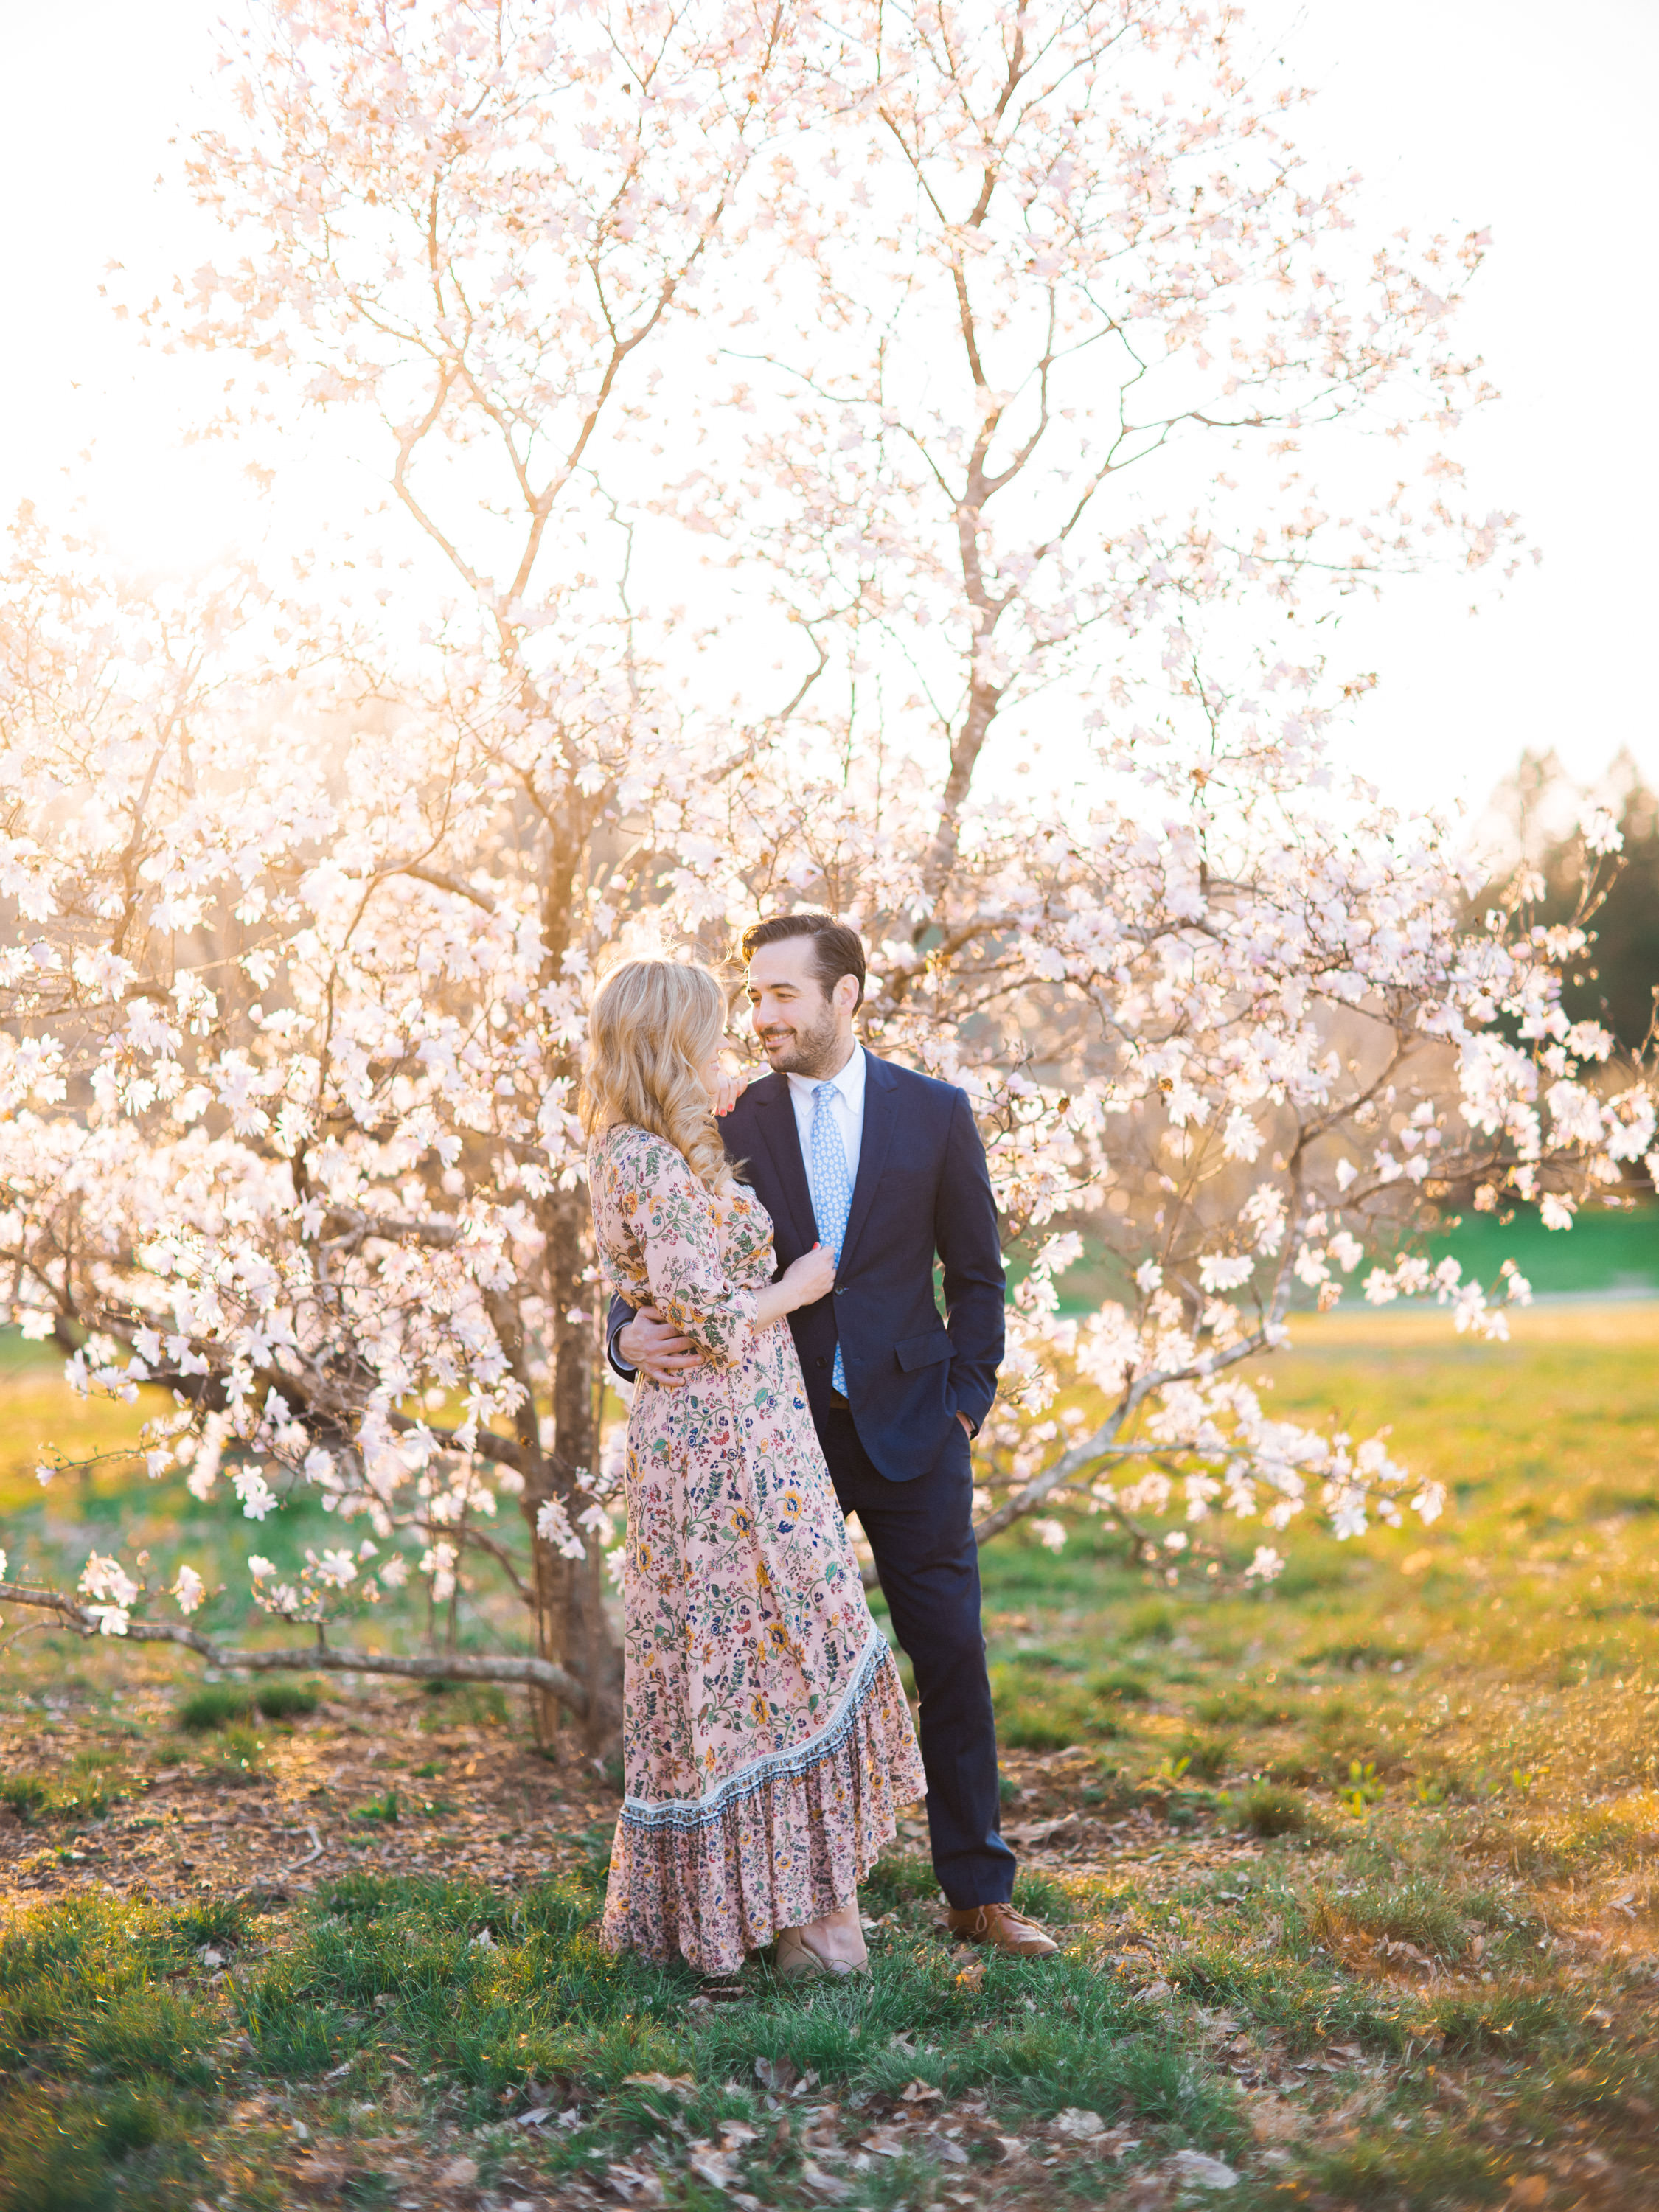 How much should I spend on a wedding photographer post photo of couple during engagement session